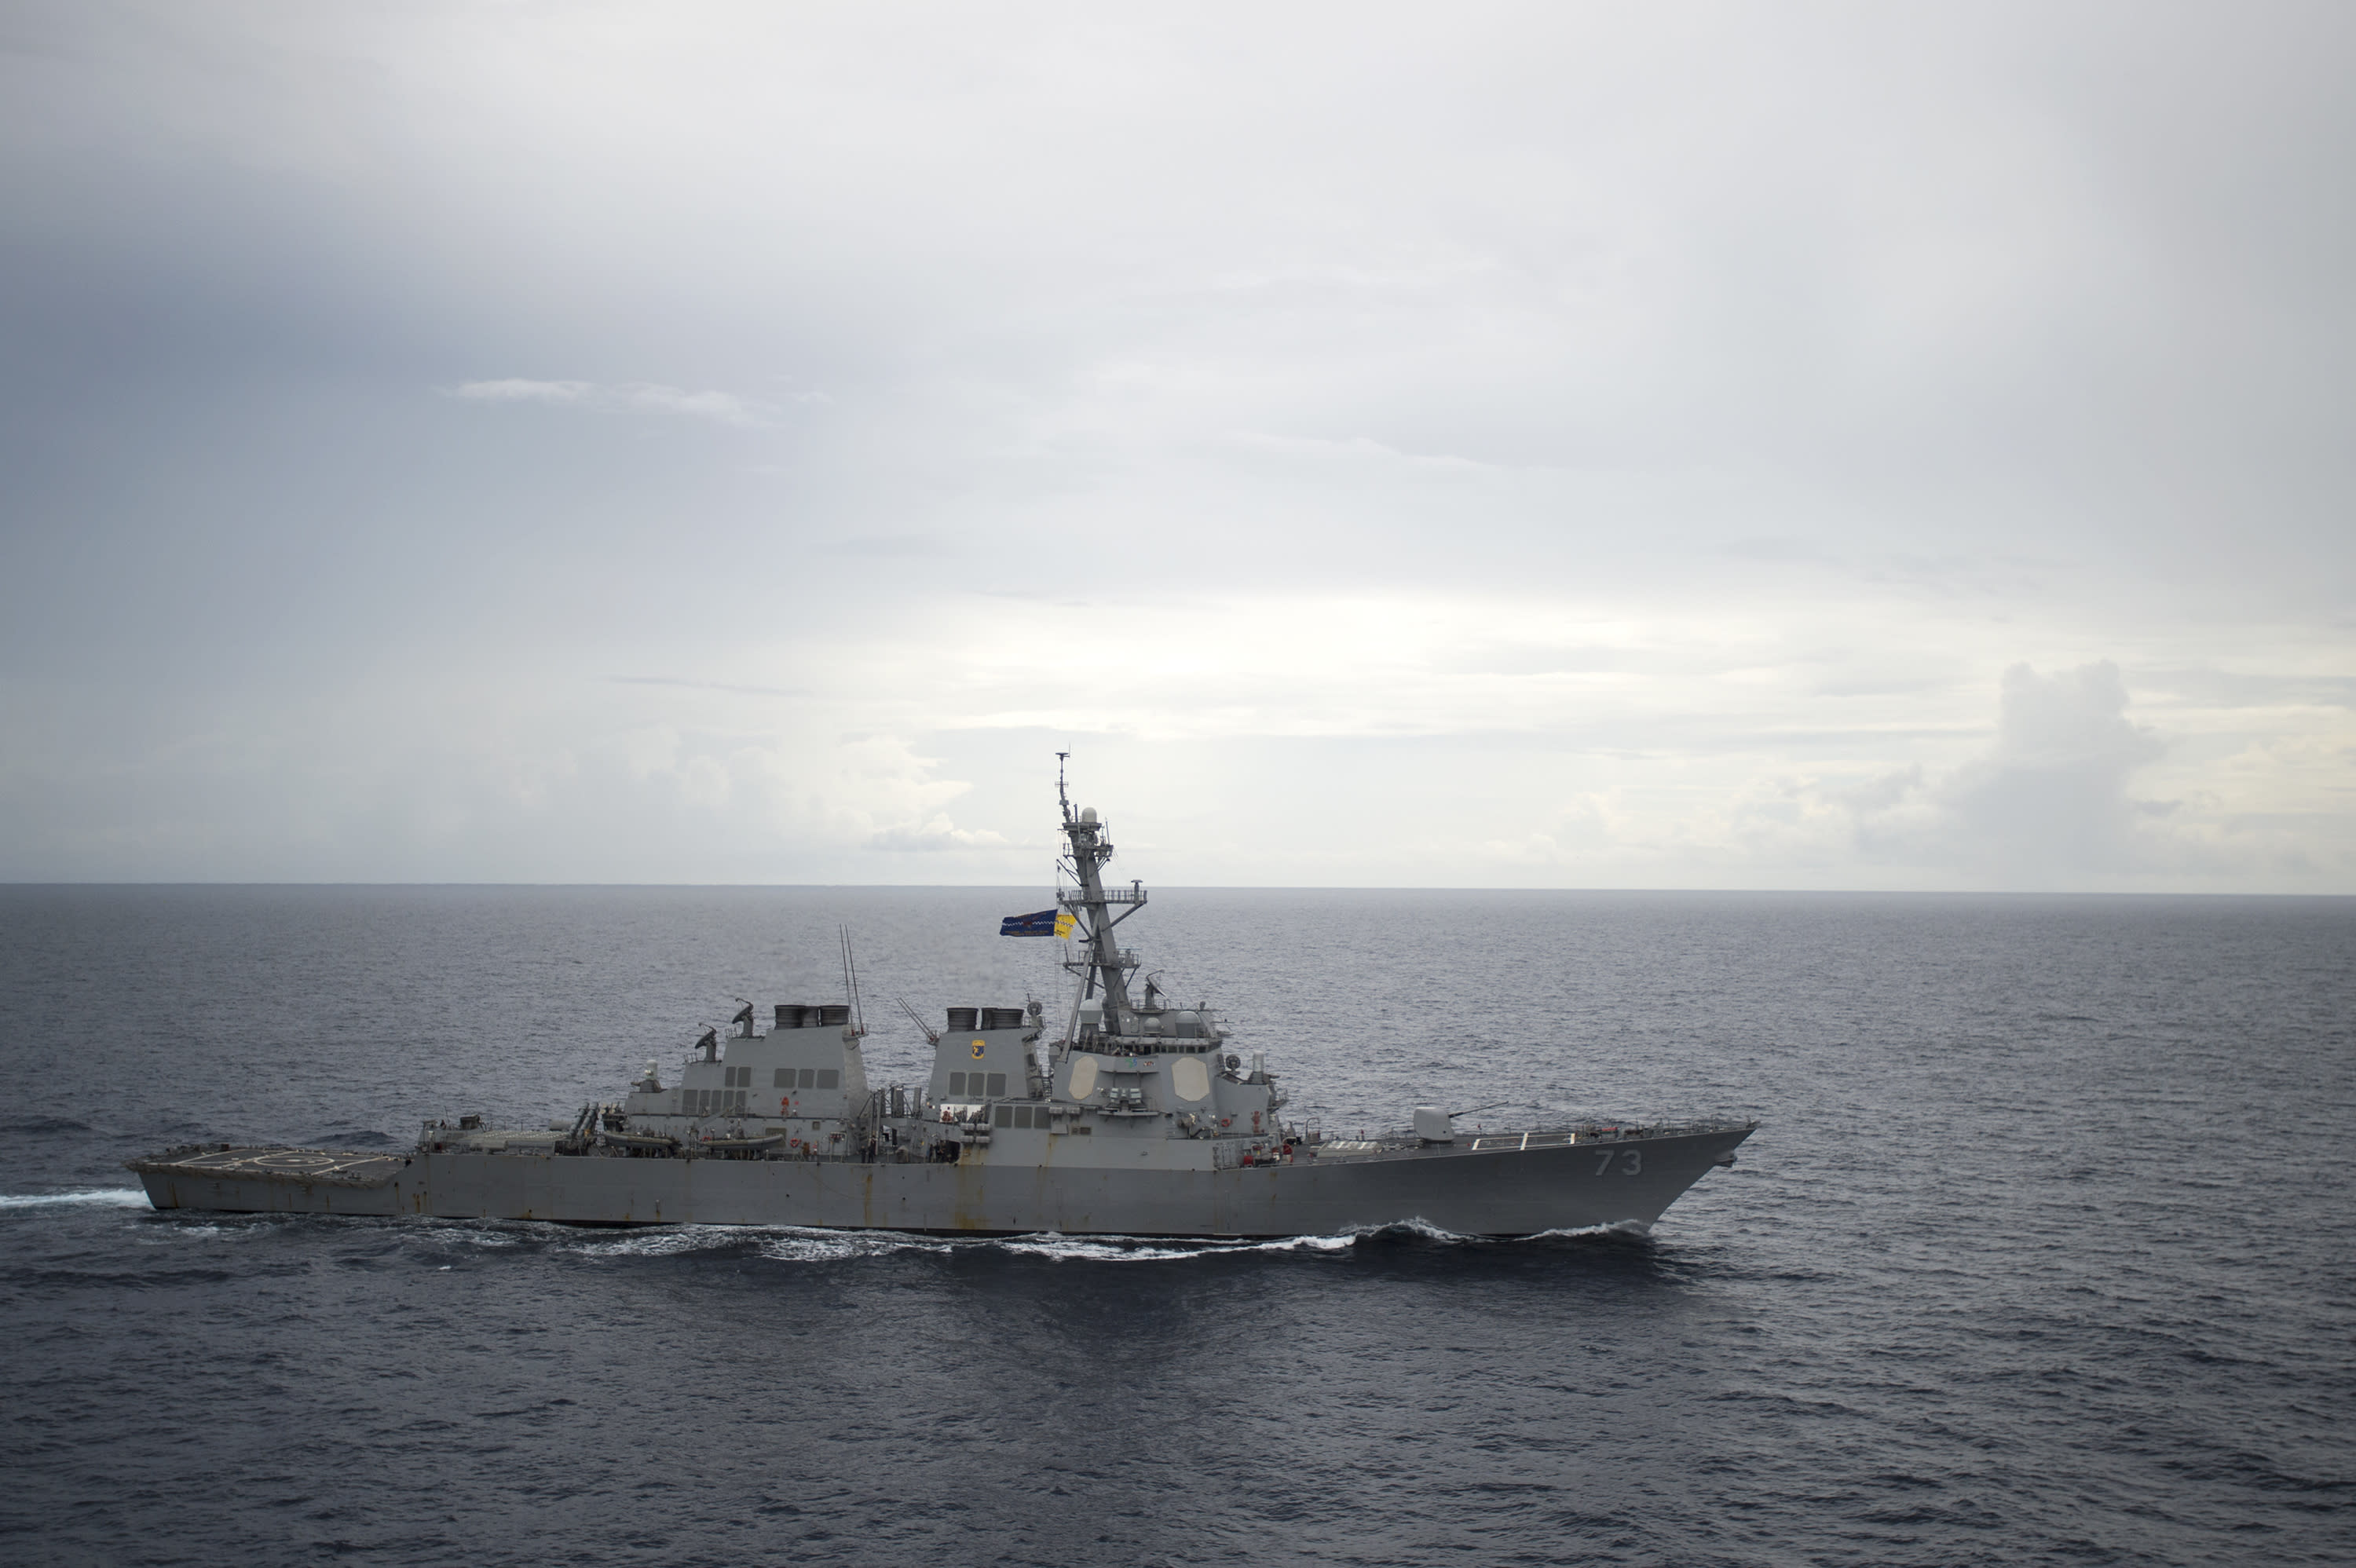 US Destroyer and Chinese Warship Nearly Collide in South China Sea